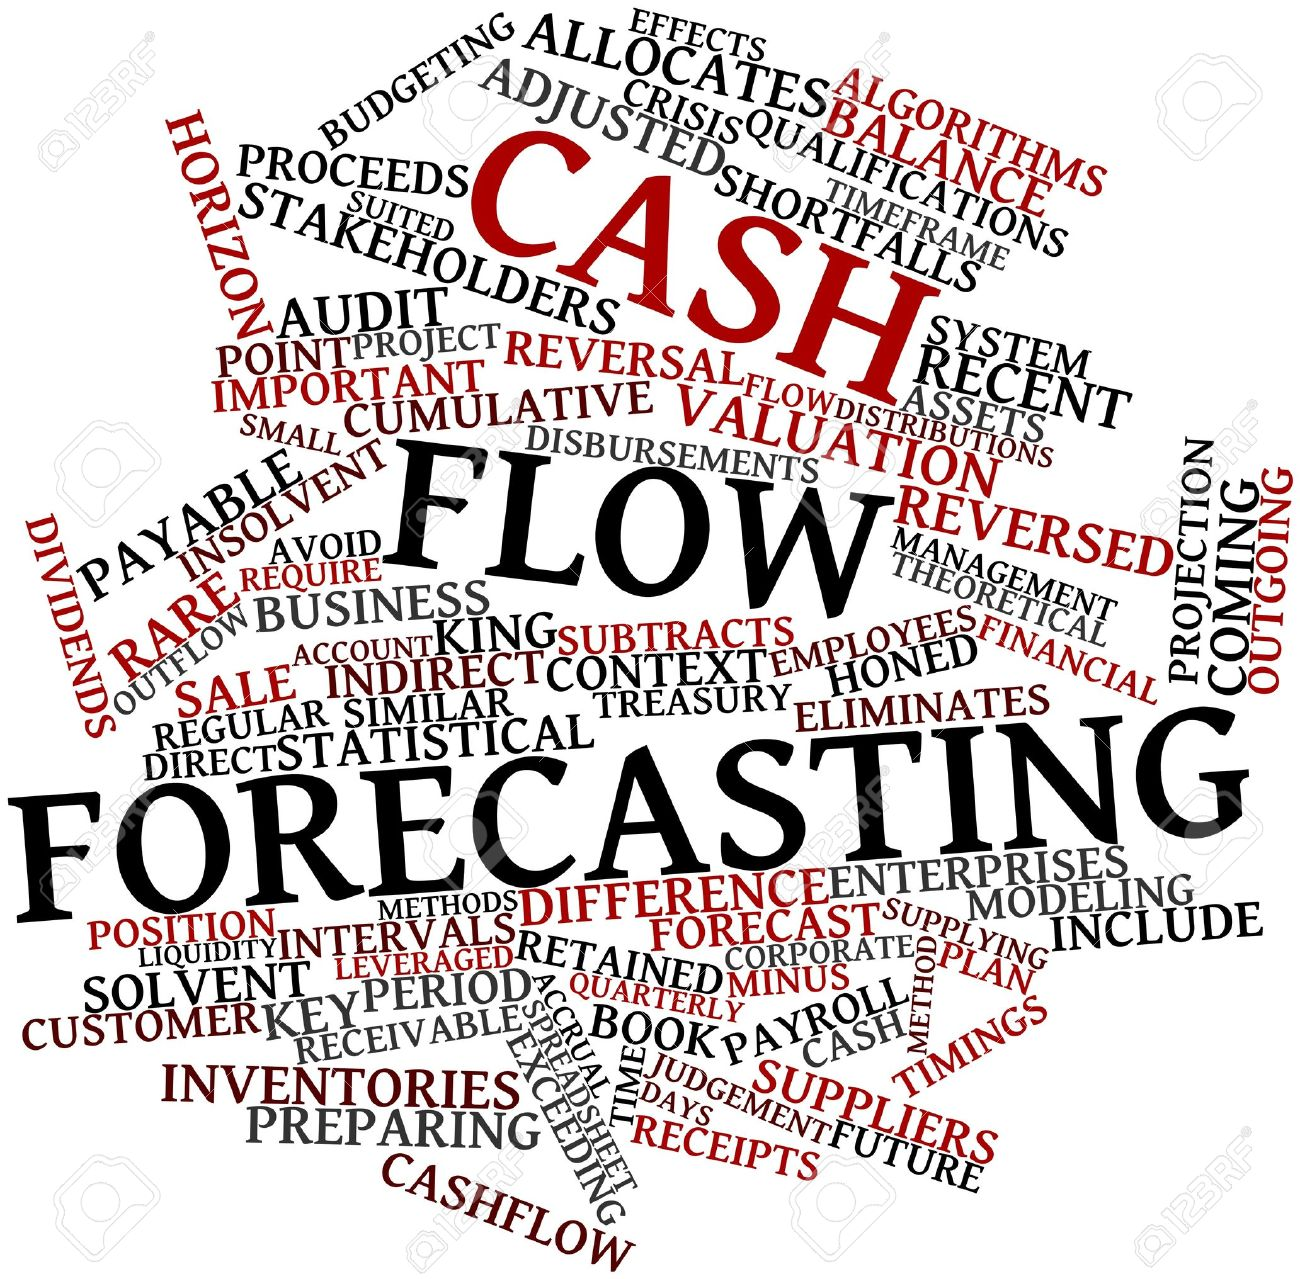 5 Reasons You Need A Cash Forecast Today